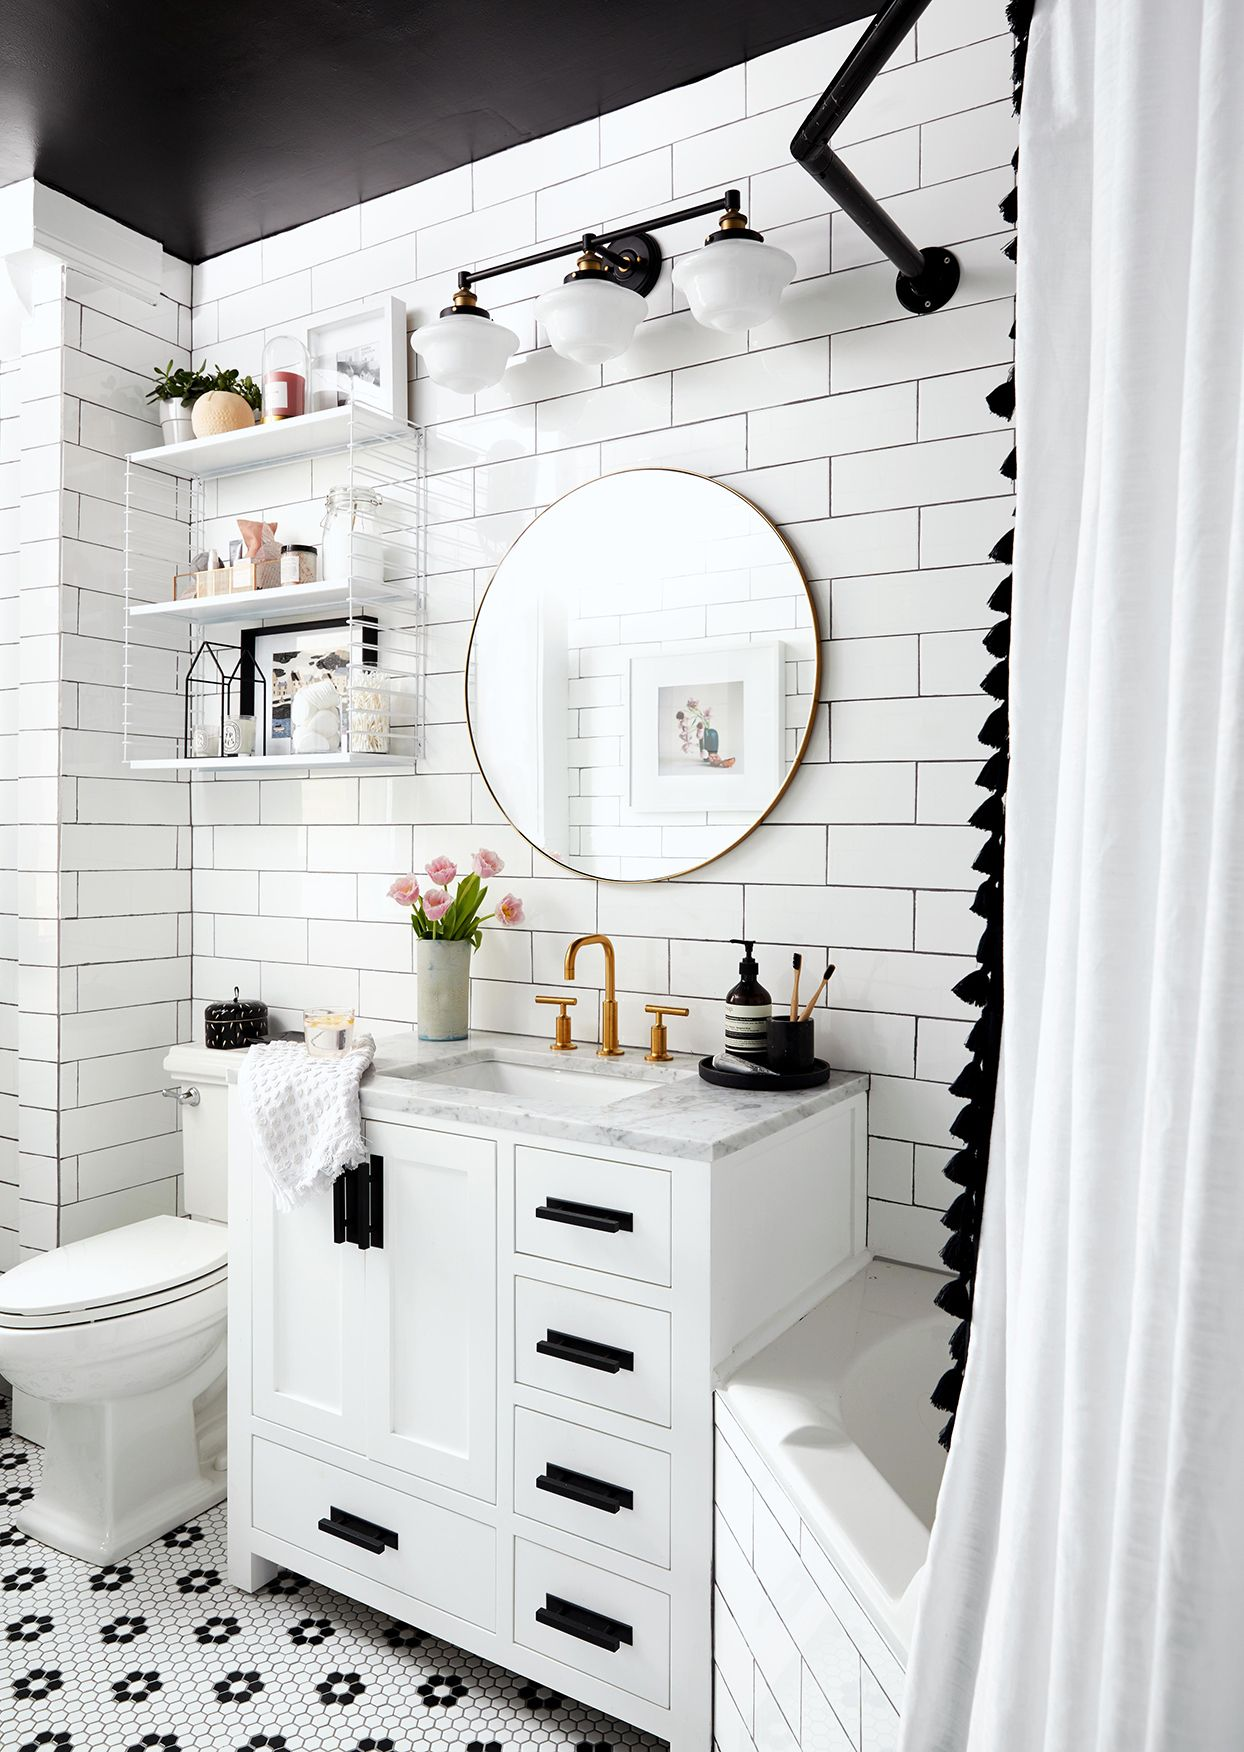 How To Stretch A Small Bathroom Budget In 2020 Small Bathroom Bathrooms Remodel Decorating Bathroom